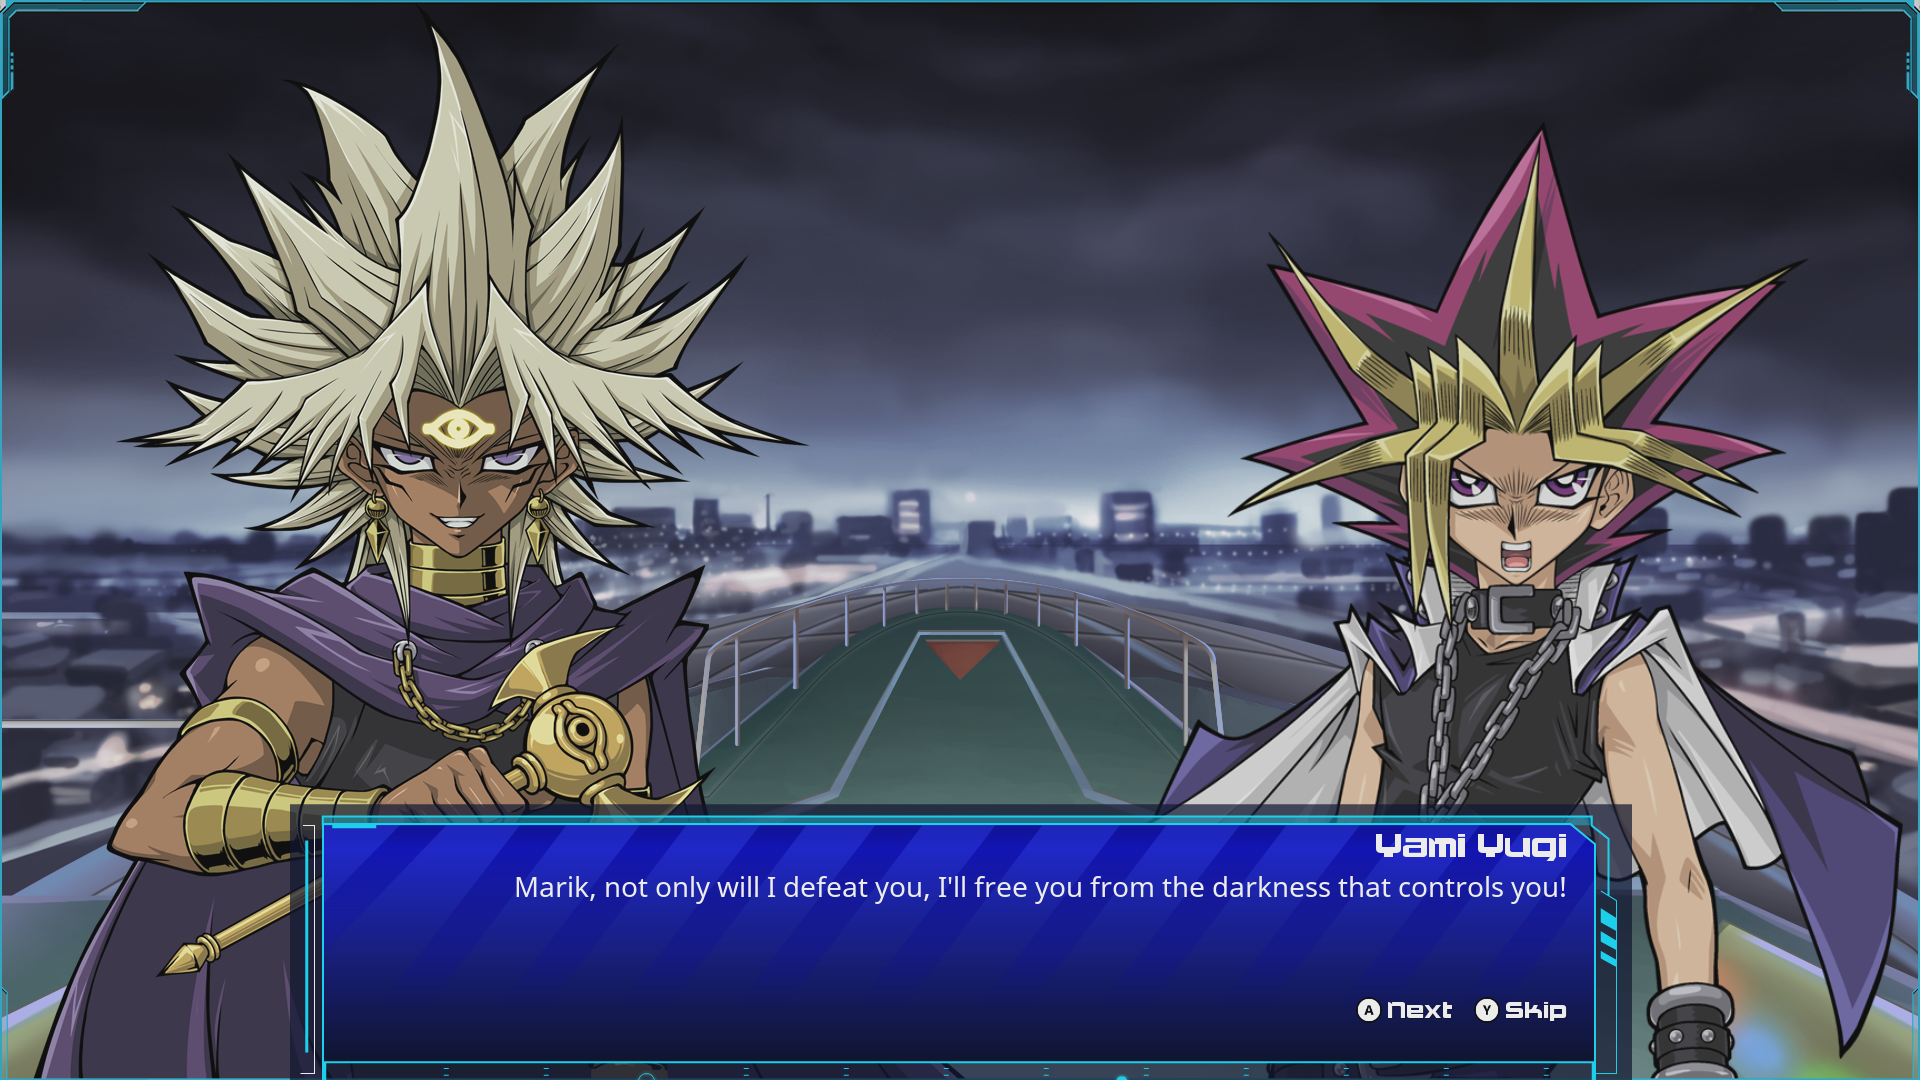 ScreenShot: Legacy of the Duelist